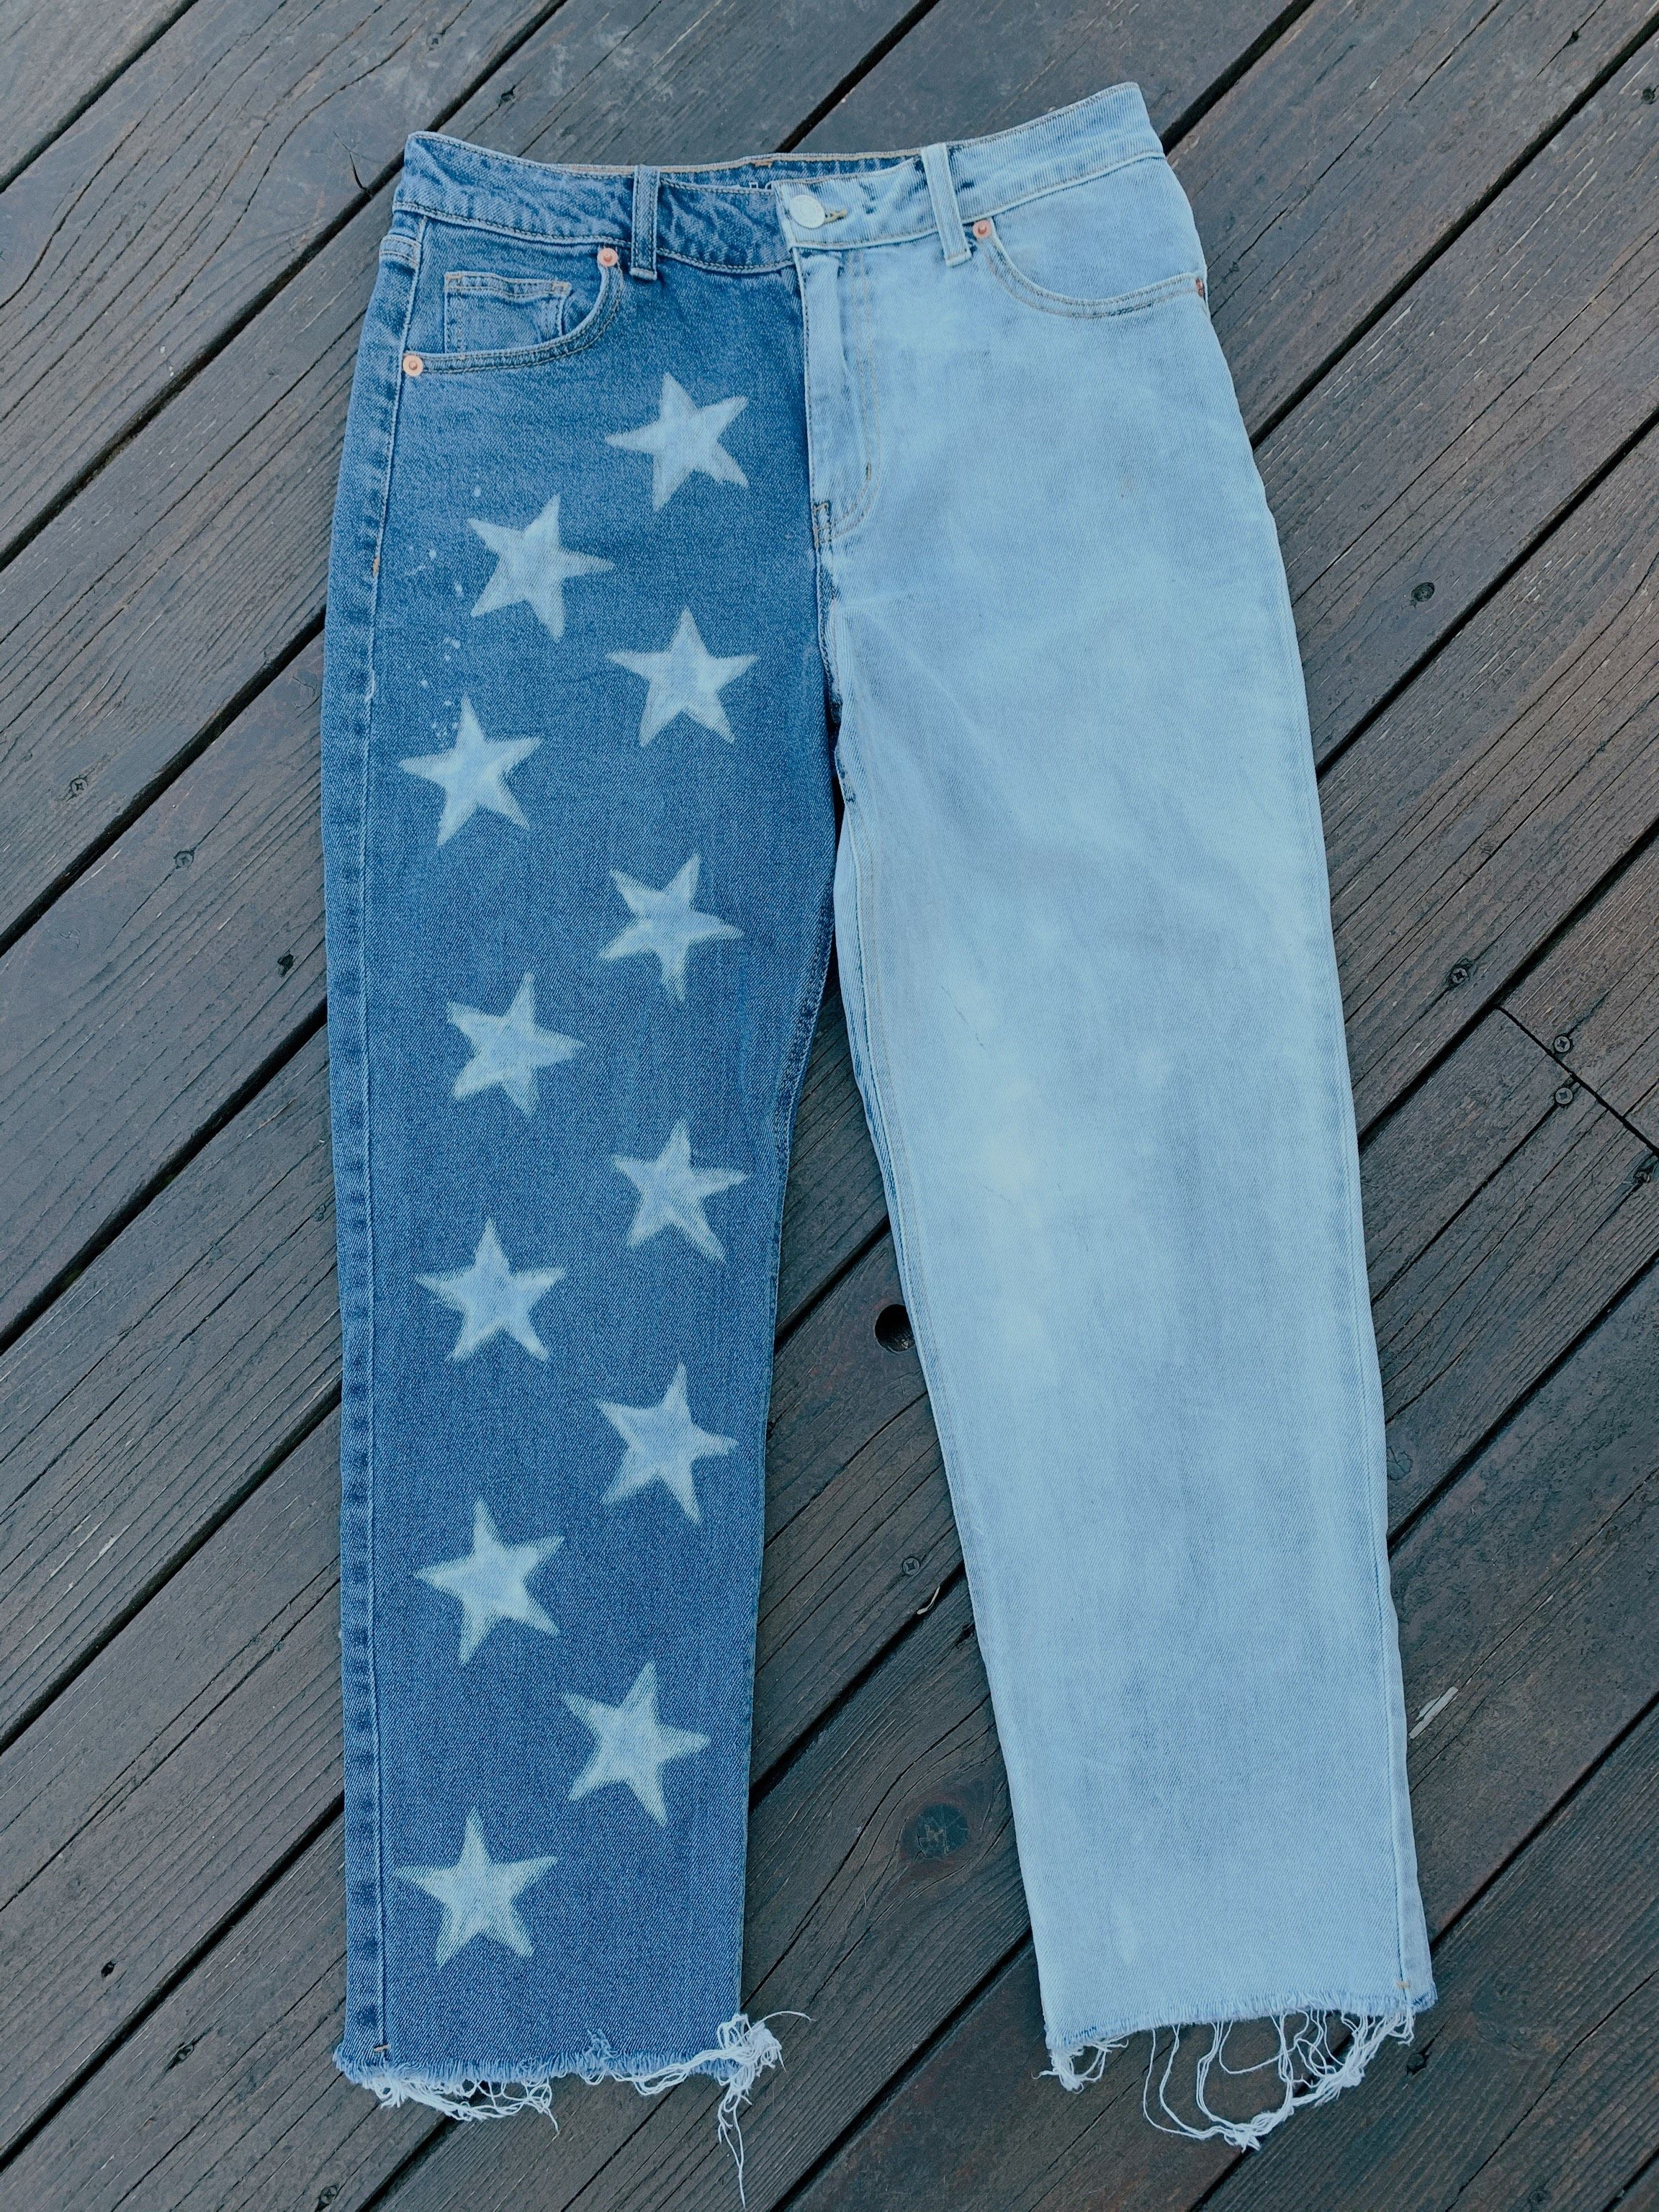 Star Bleached Jeans In 2020 Bleach Jeans Diy Bleached Jeans Star Jeans